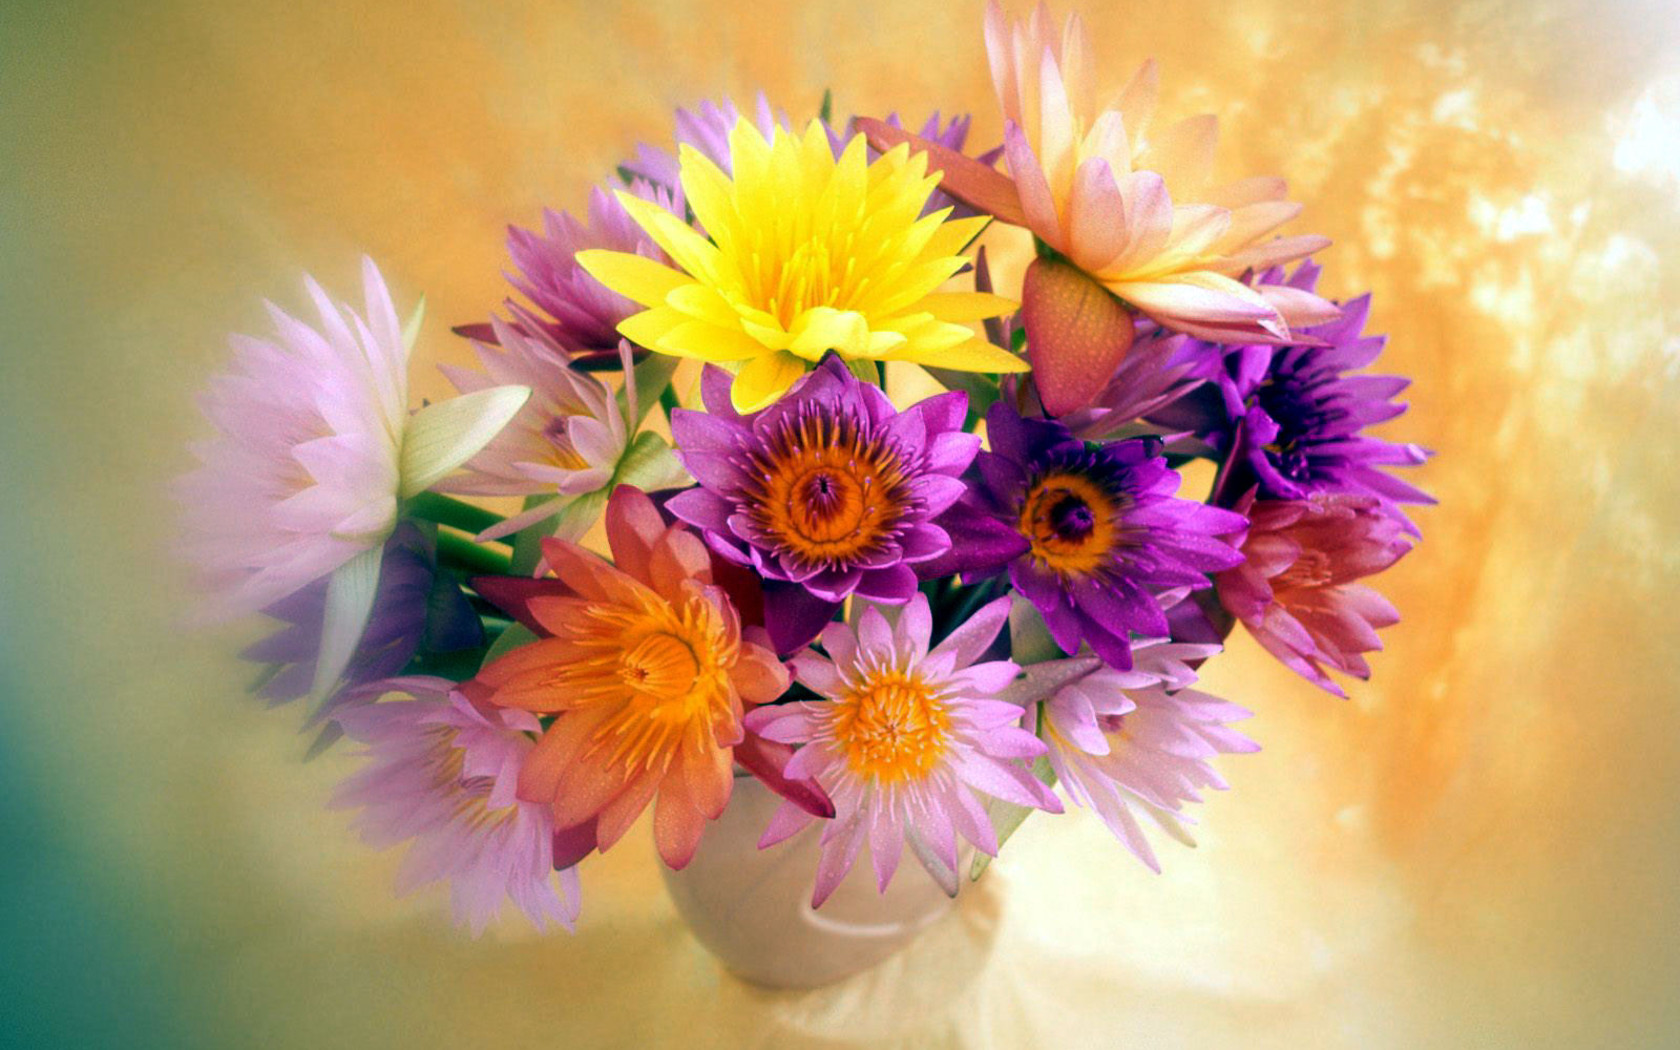 Bunch of flowers images download picture library library 1920x1200px Bunch Of Flowers Beautiful | #322649 picture library library